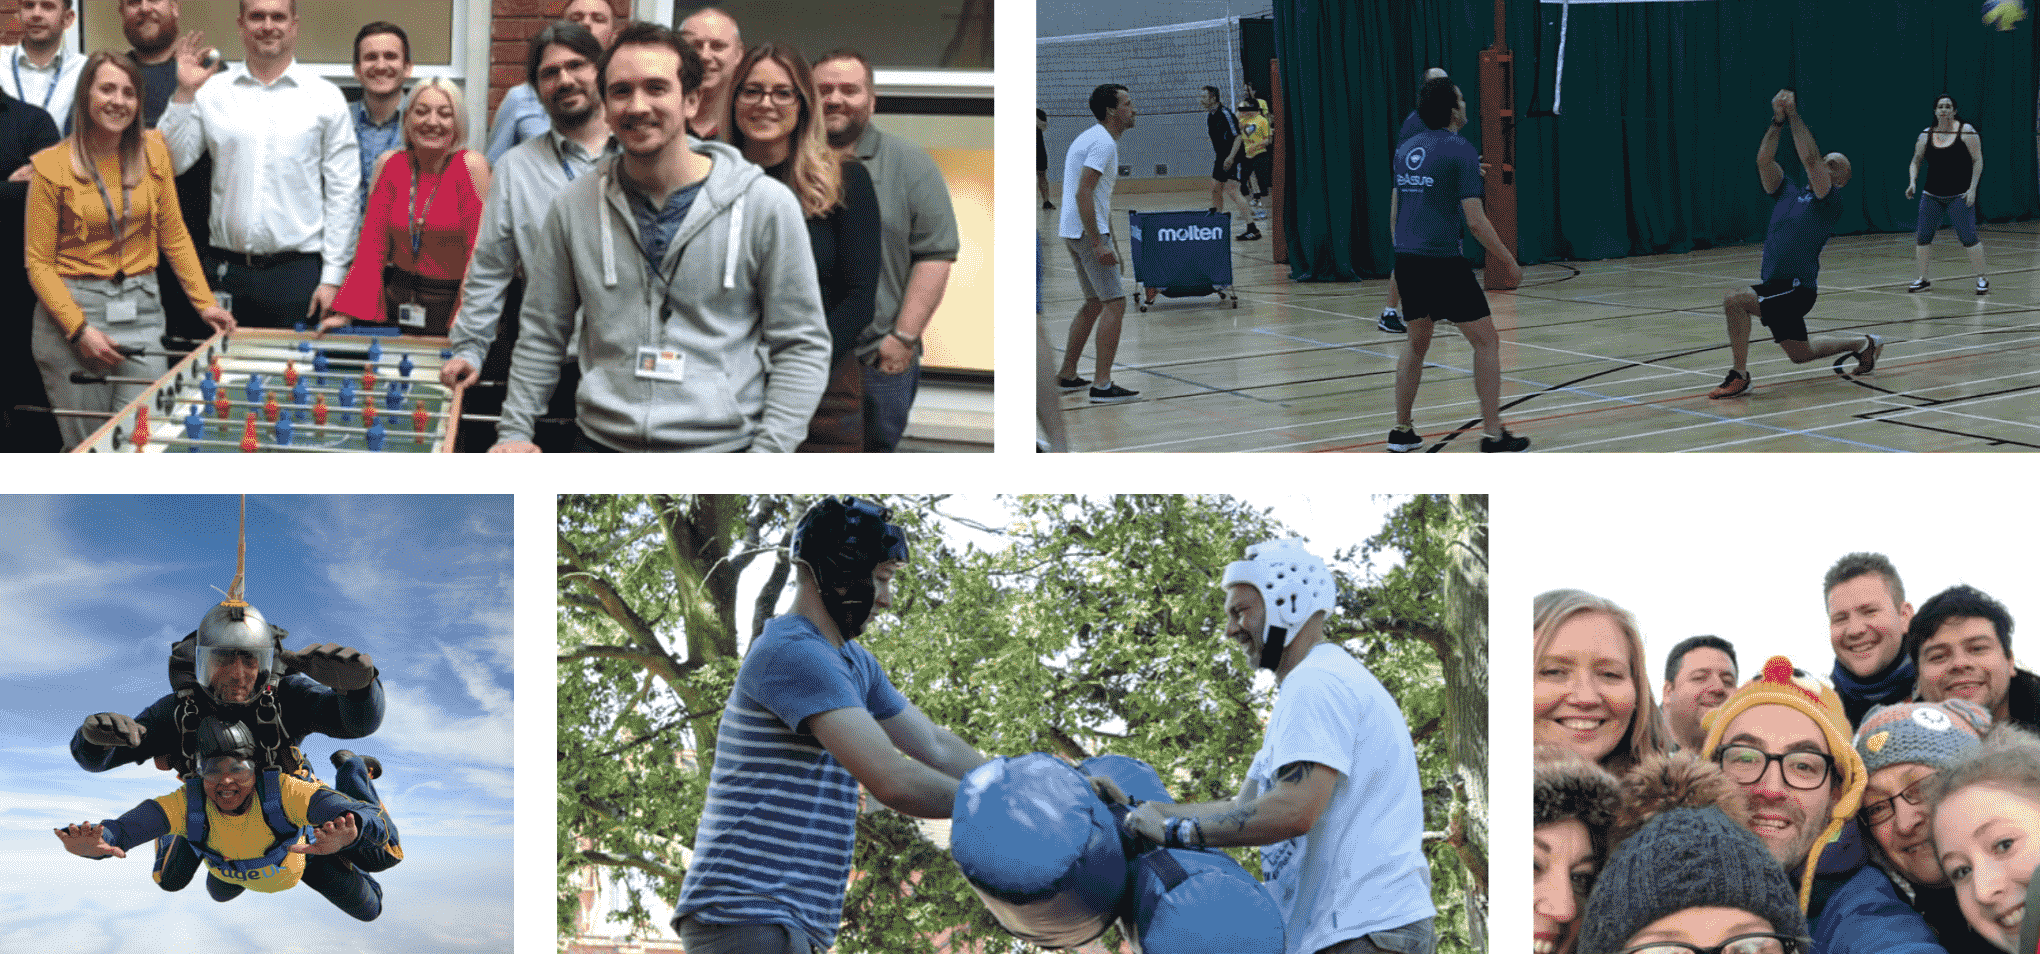 collage of photos showing workforce active